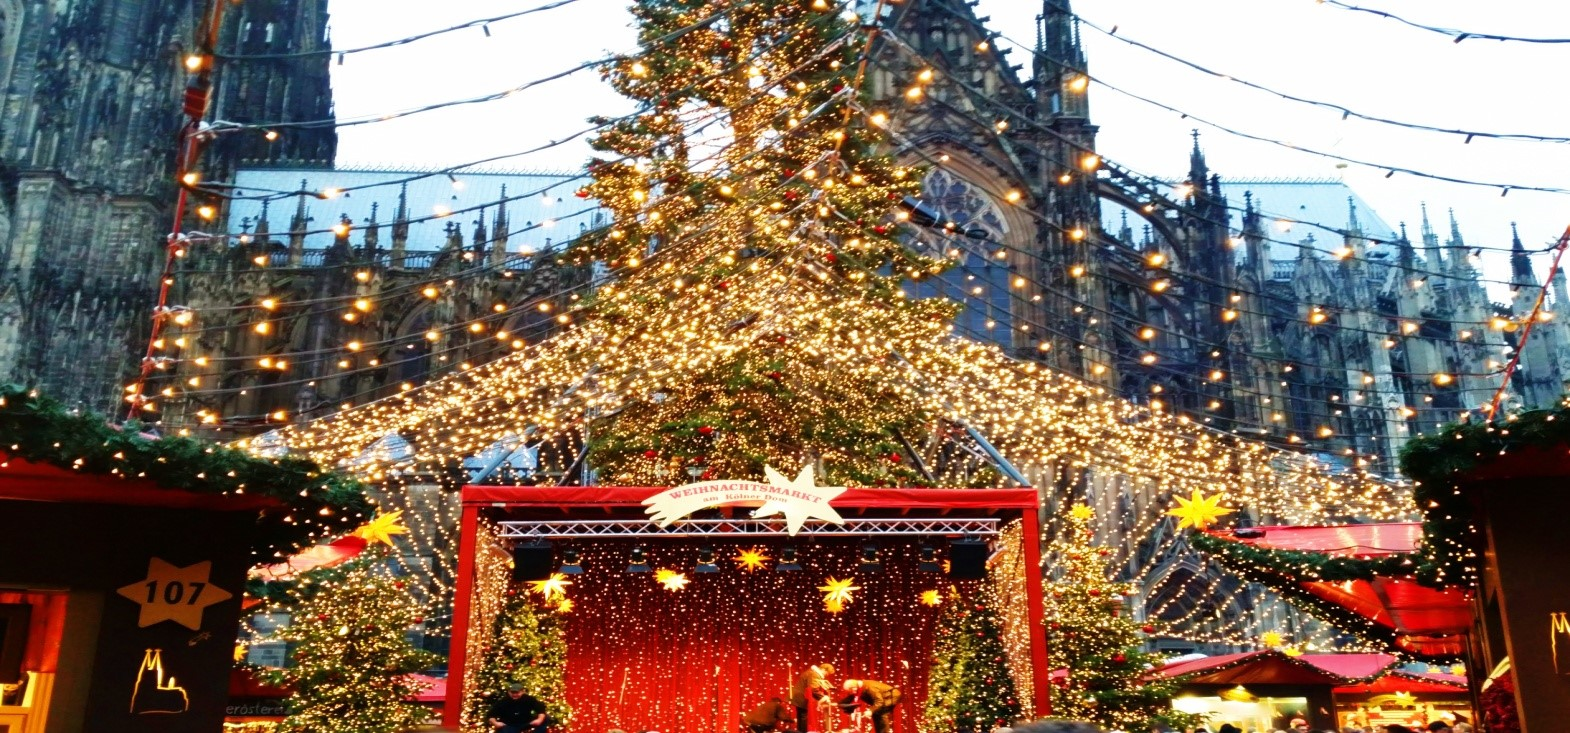 europes 5 best christmas markets travel bloggers tell all - Cologne Christmas Market